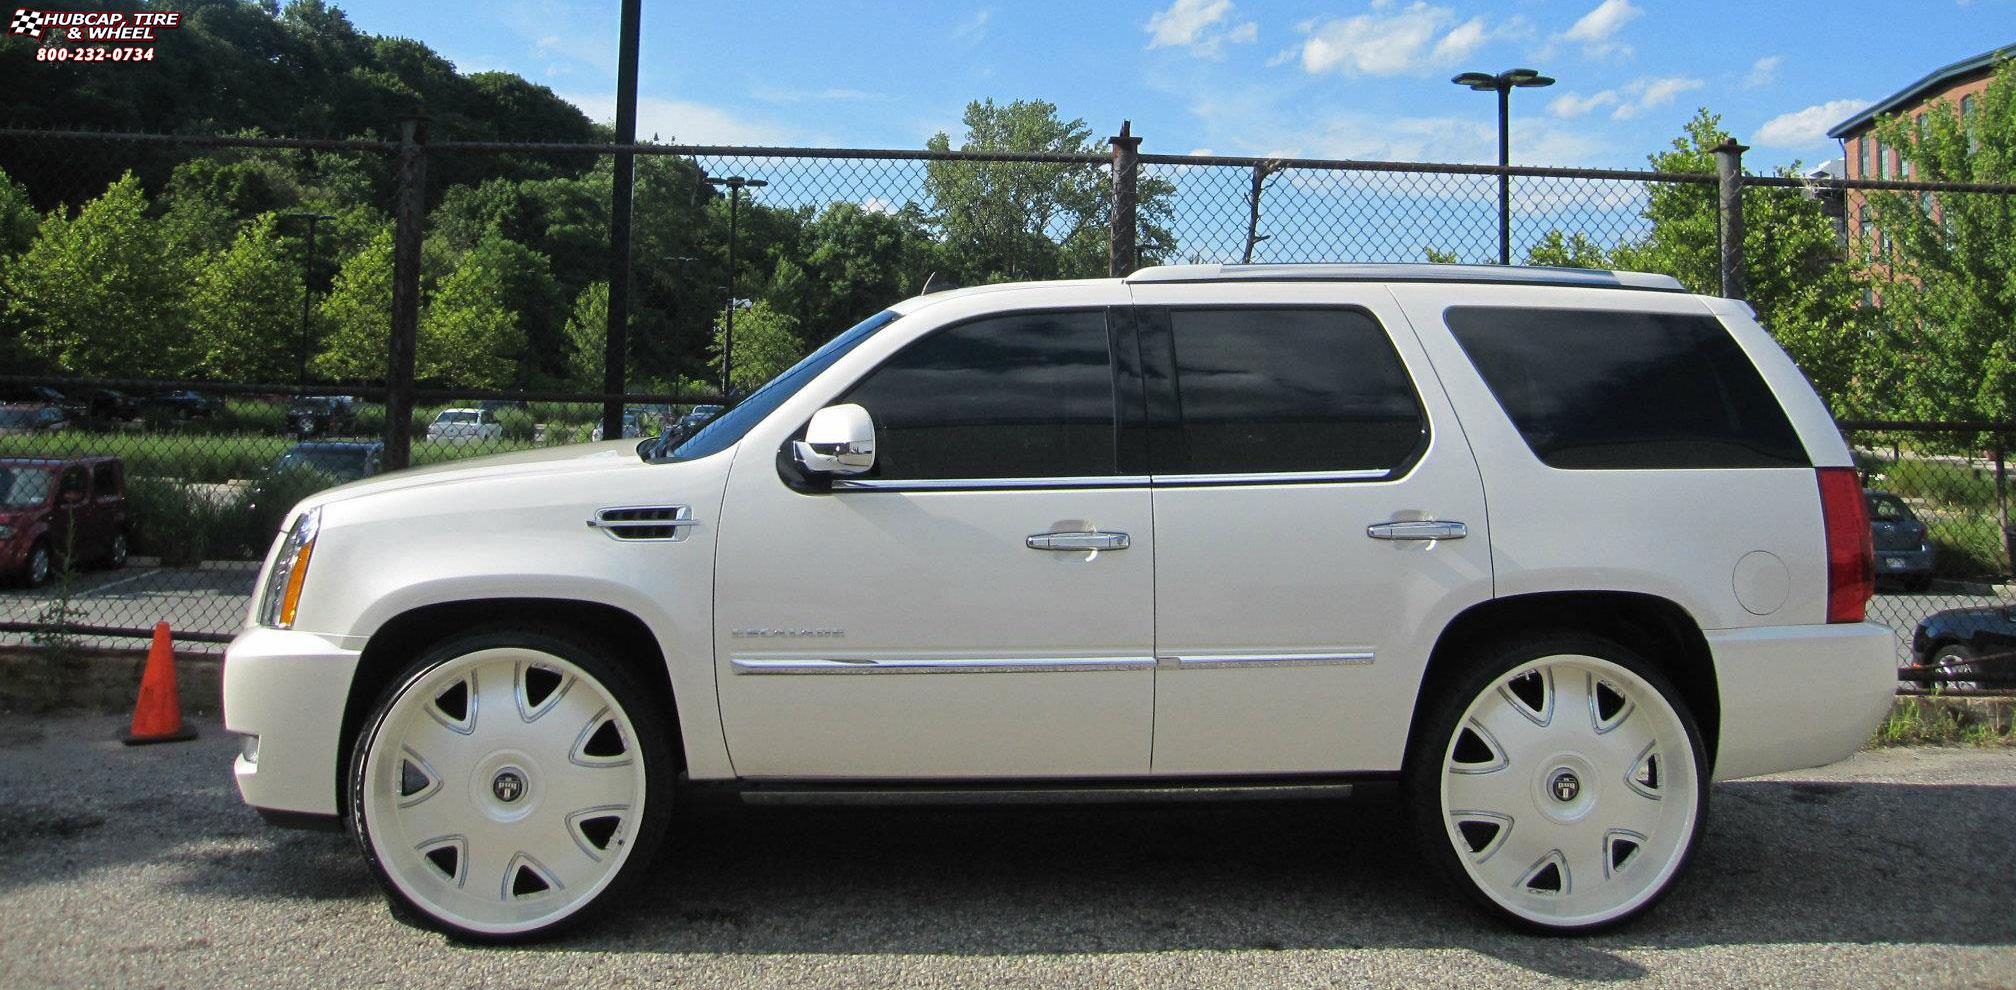 cadillac escalade dub bandito s138 wheels custom white. Black Bedroom Furniture Sets. Home Design Ideas